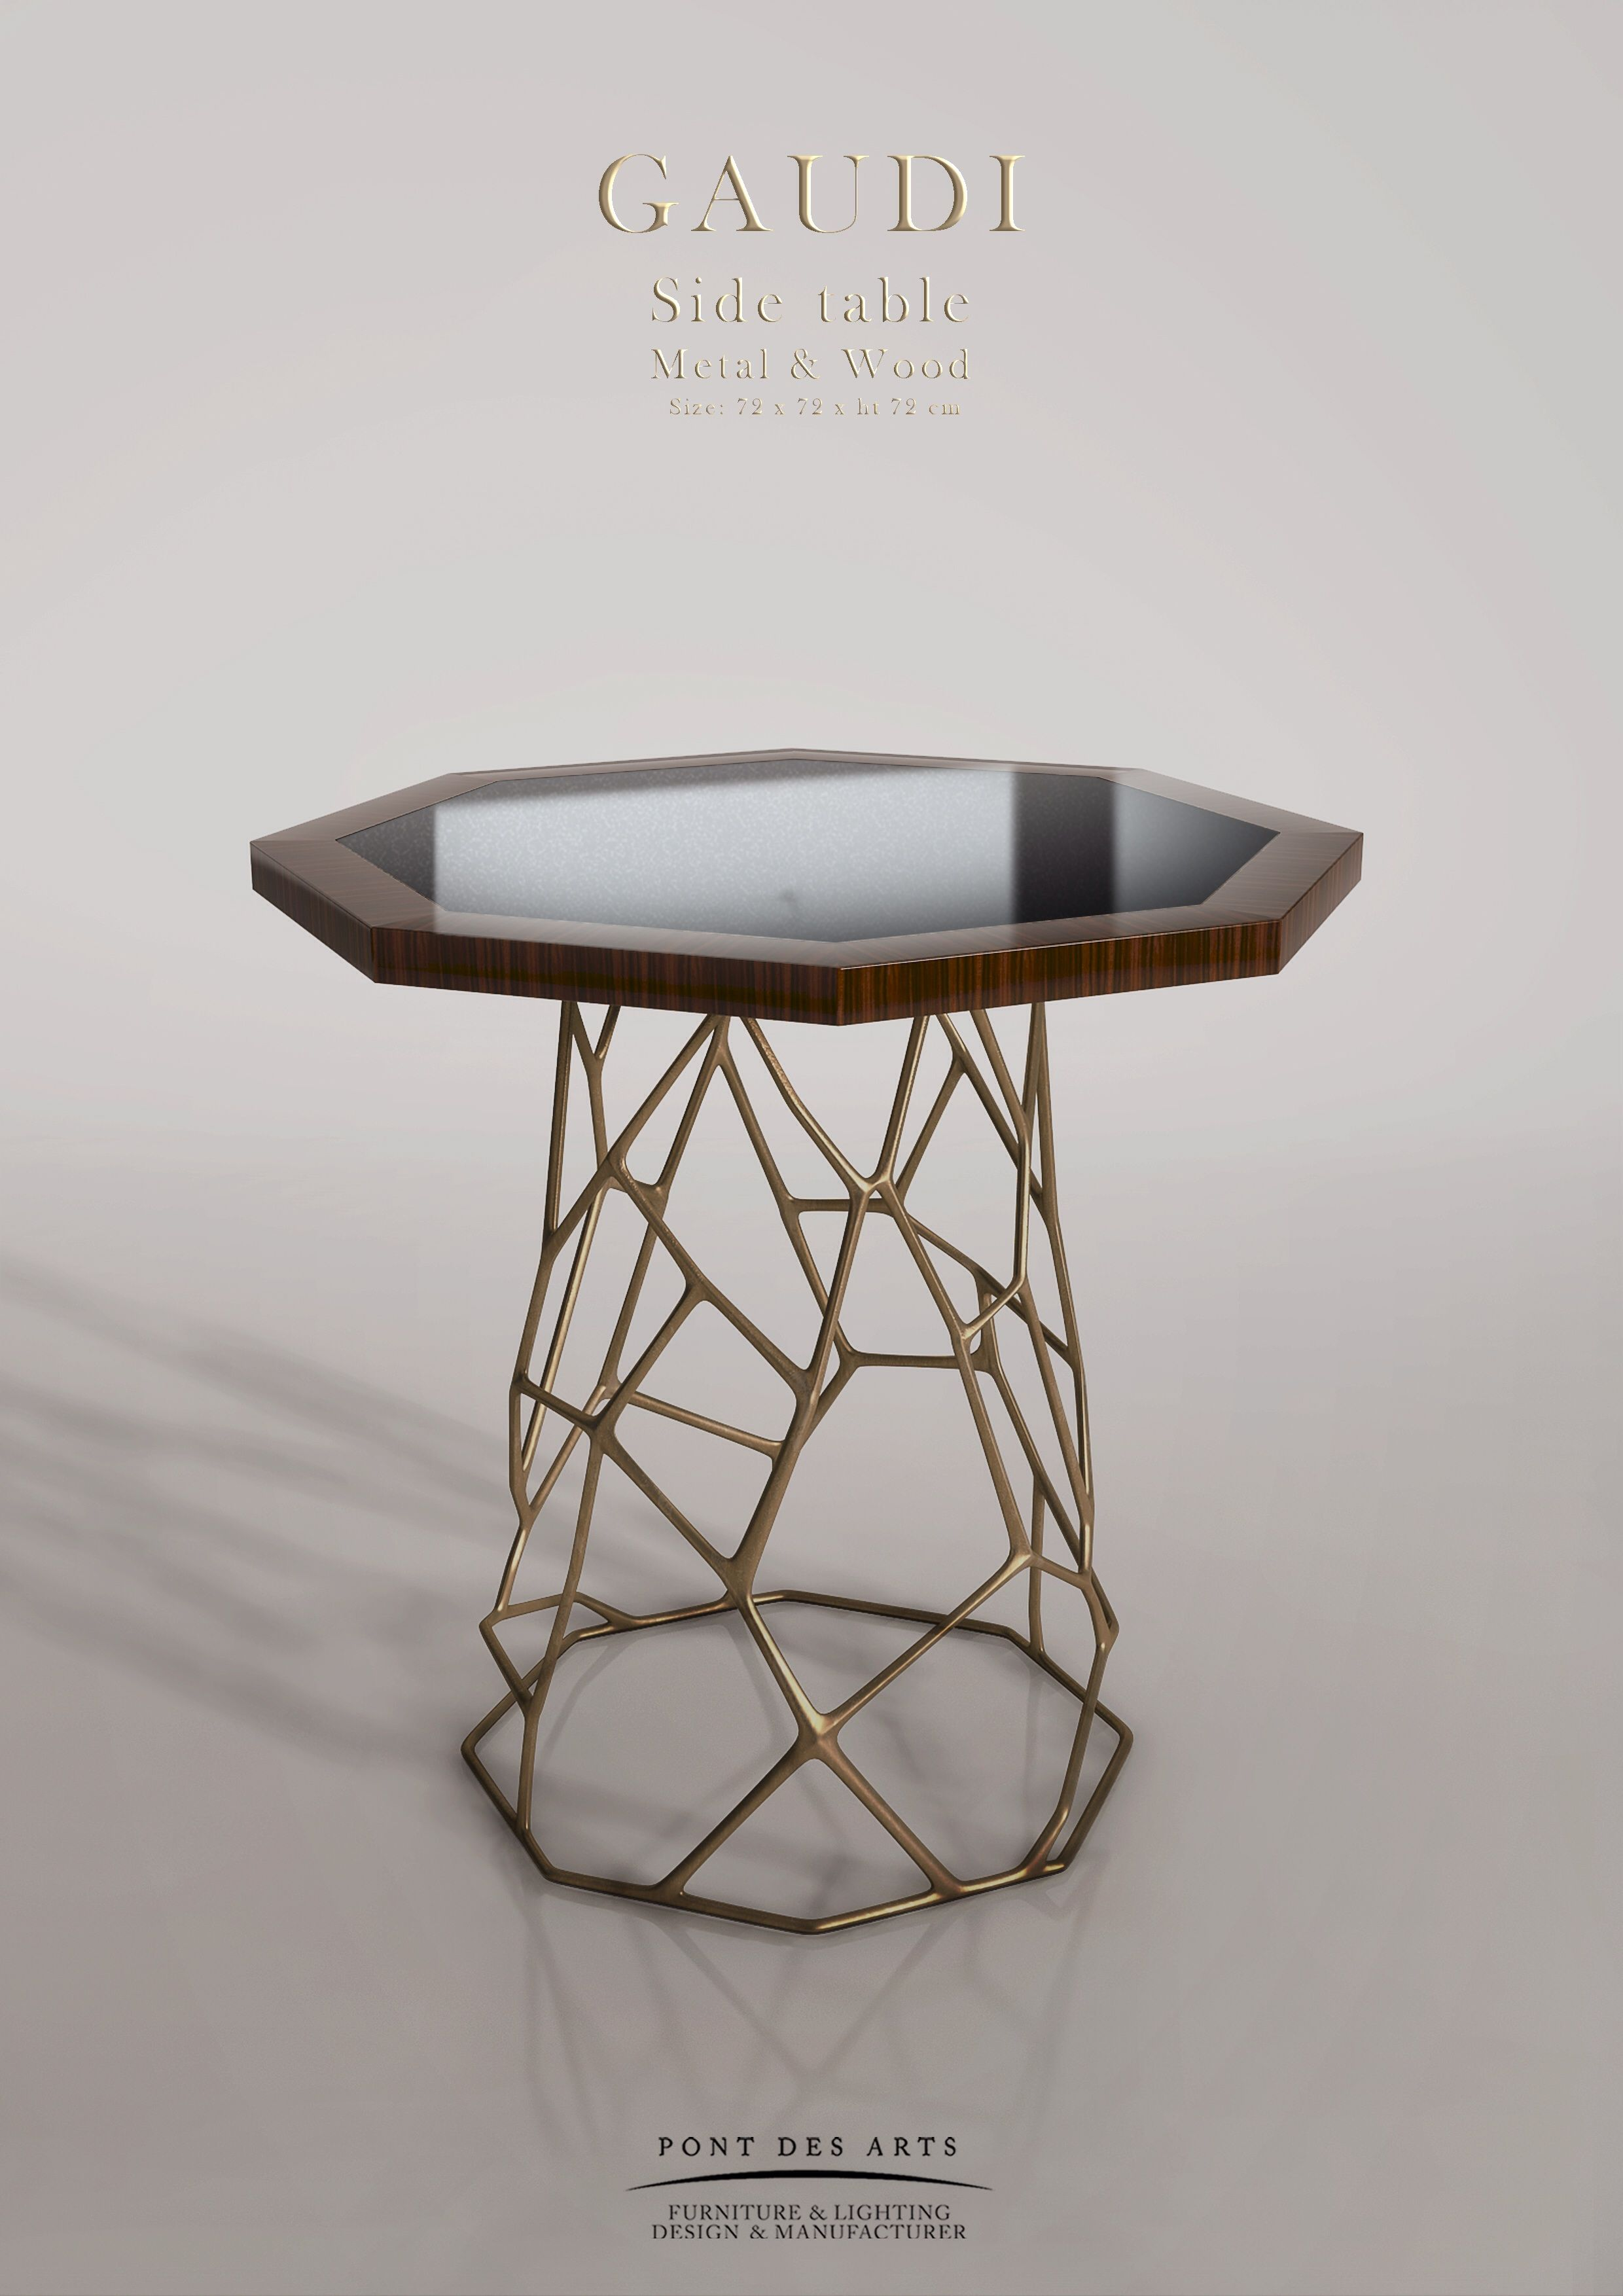 Gaudi Table Bronze And Marble Pont des Arts Monzer Hammoud